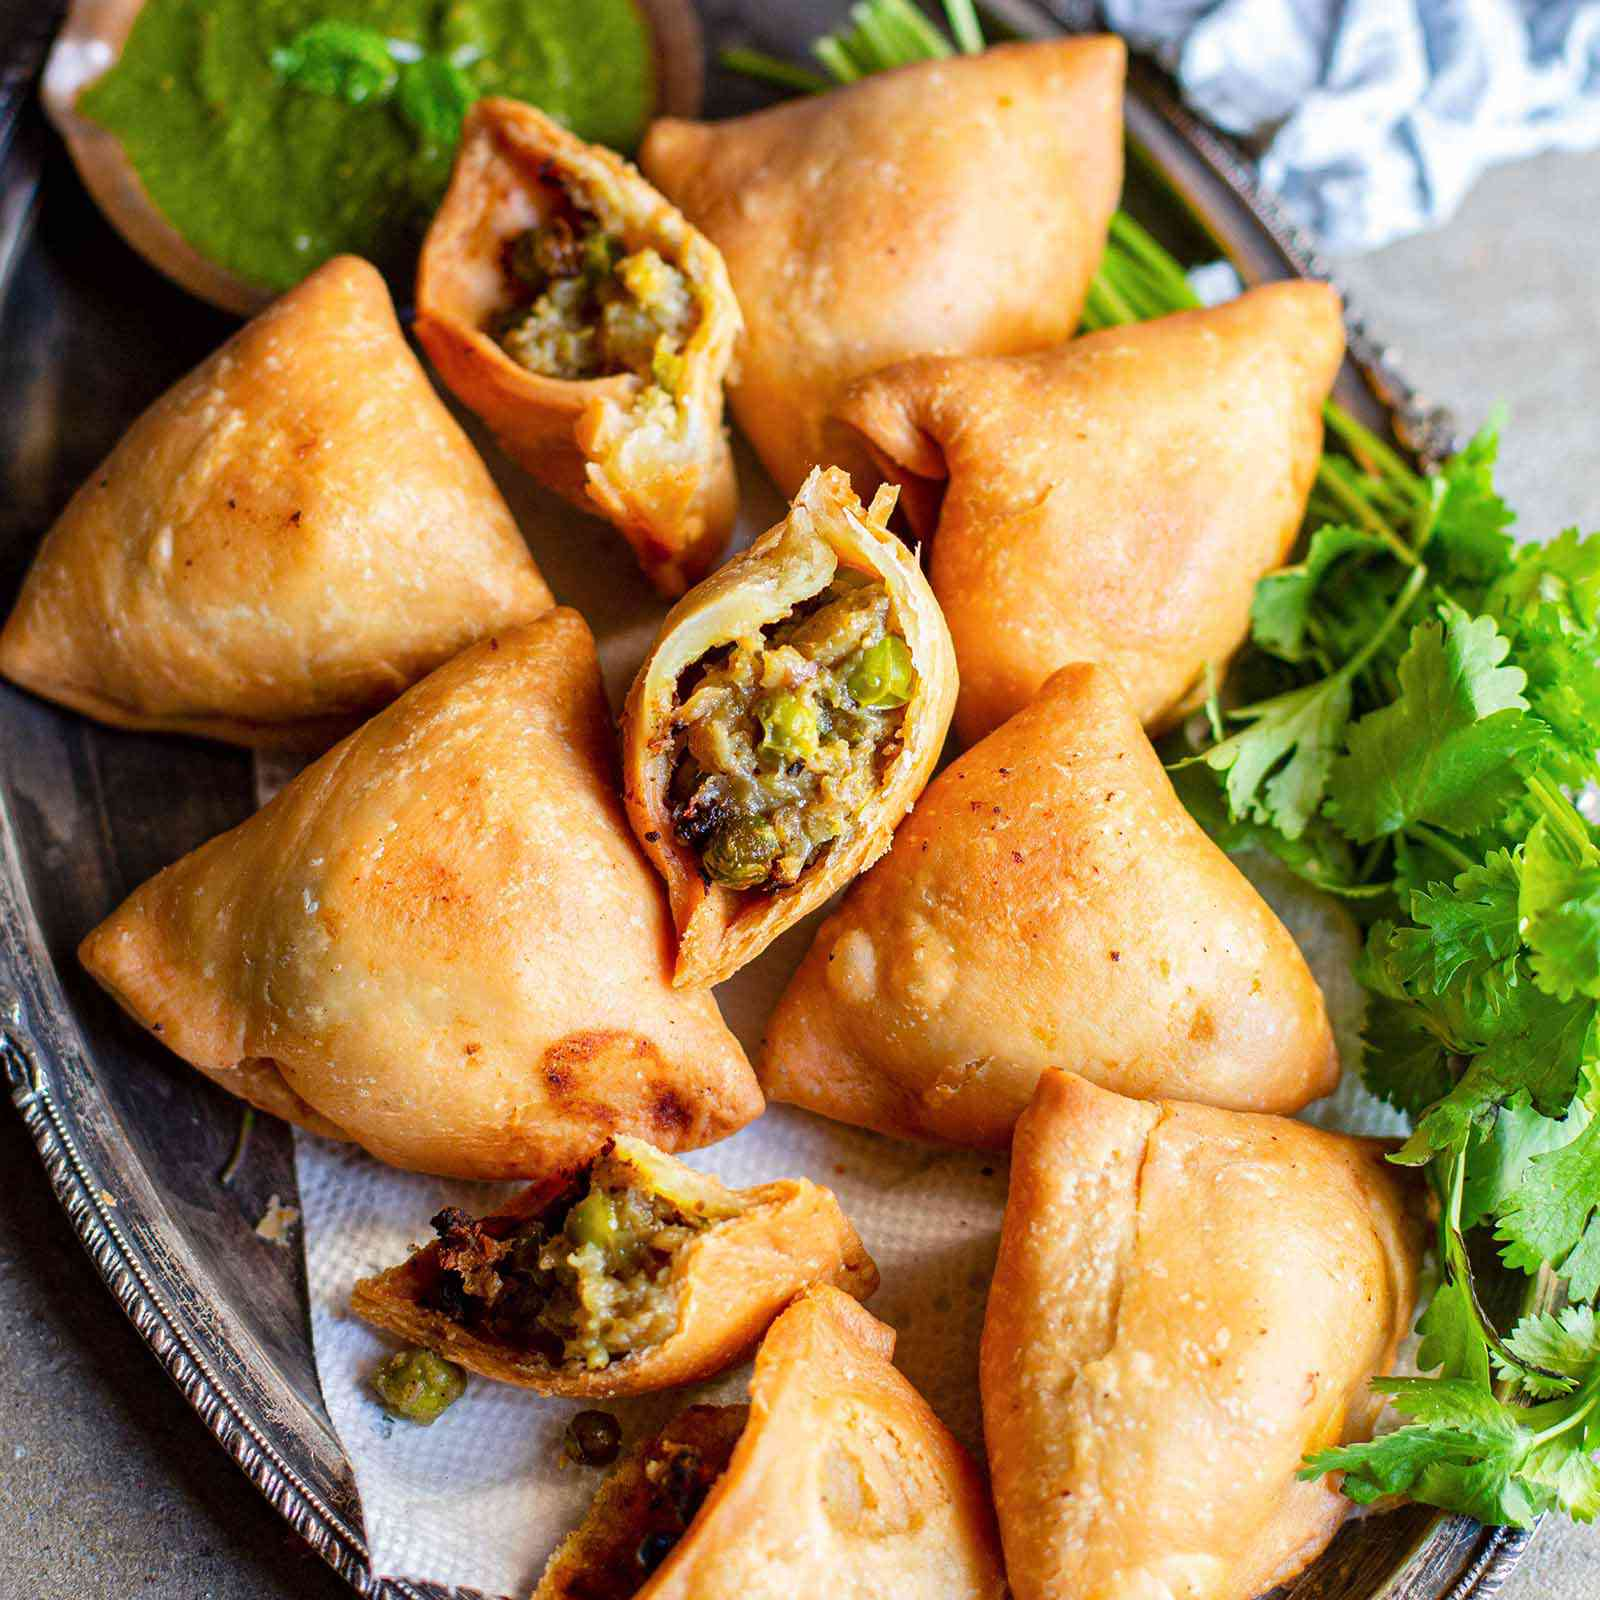 Golden Vegetarian Samosas on a bed of herbs with one samosa broken open to show the potato and pea filling.